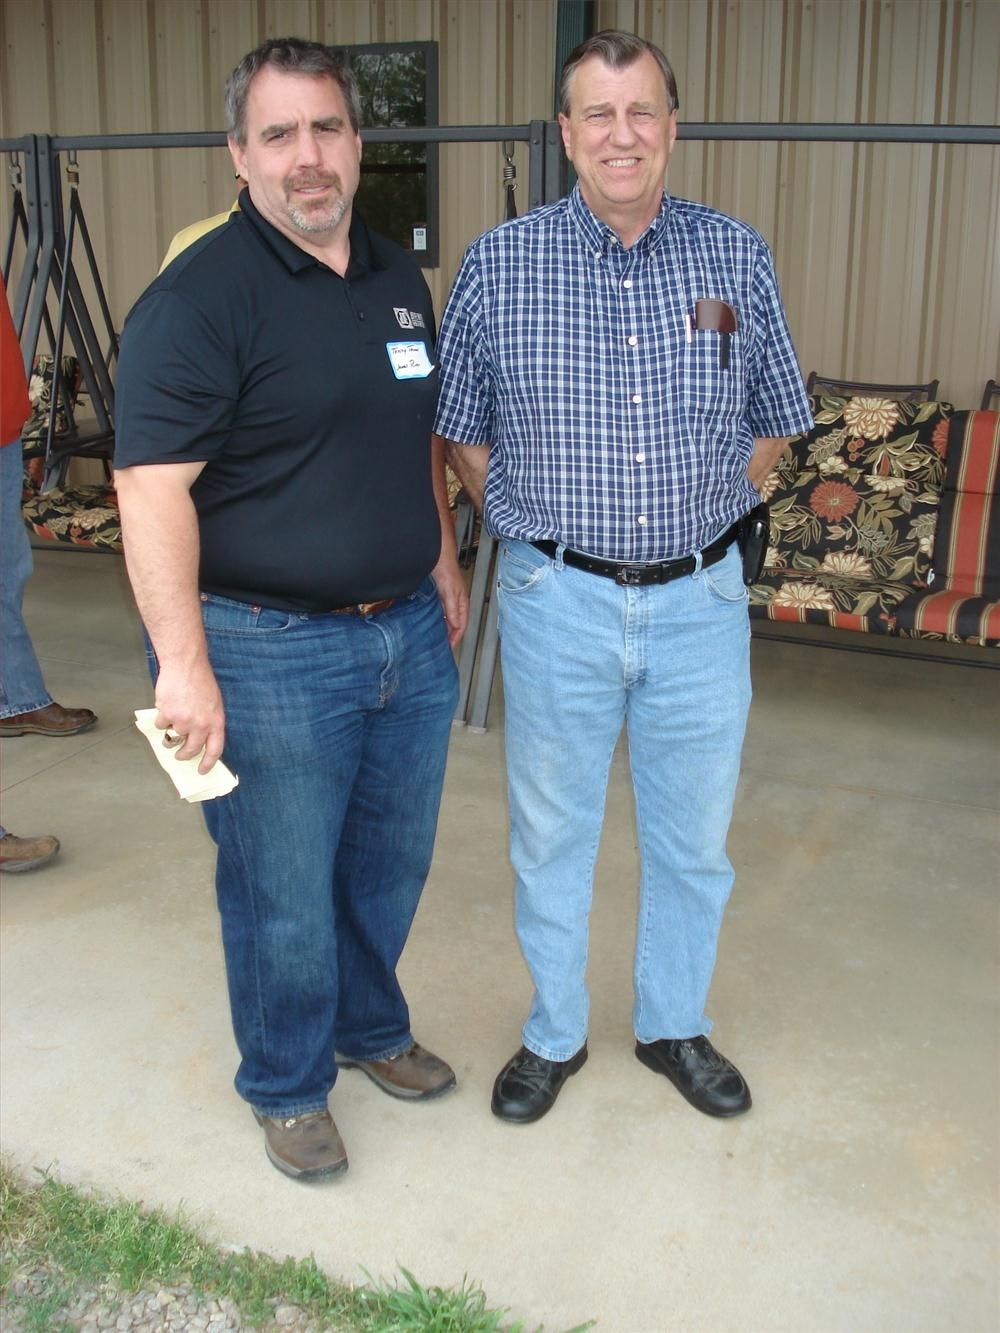 Terry Thomas (L) of James River Equipment welcomes Steve Burleyson of Blythe Construction.